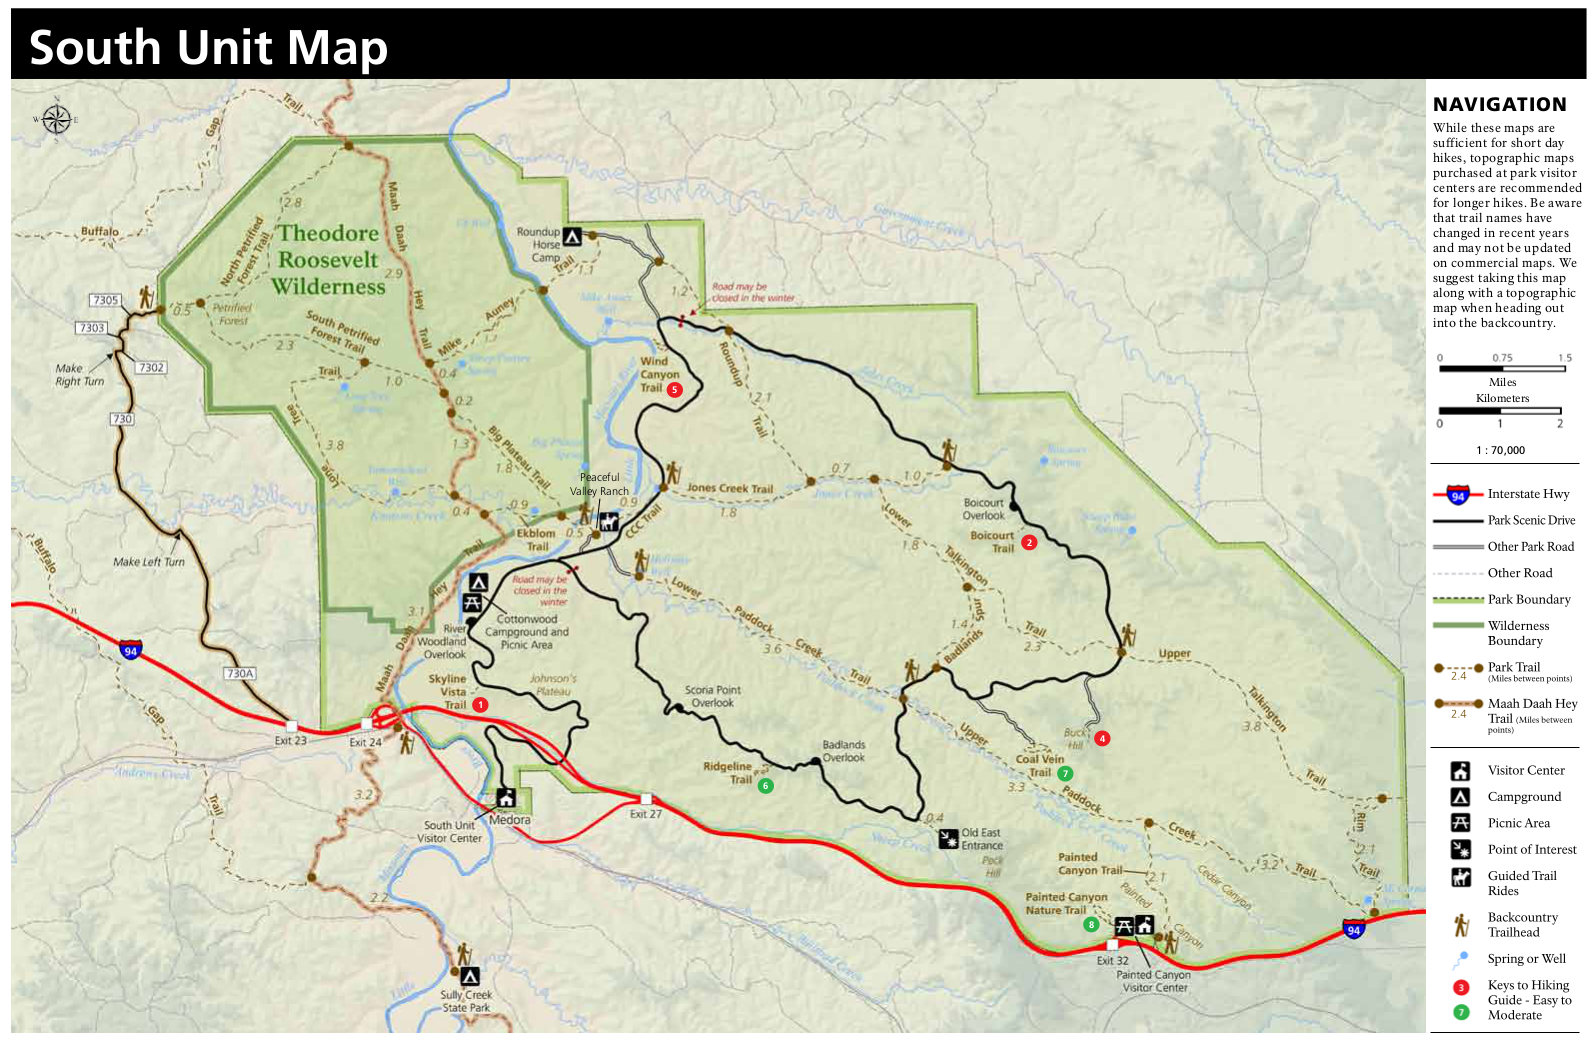 theodore-roosevelt-south-unit-hiking-map.jpg